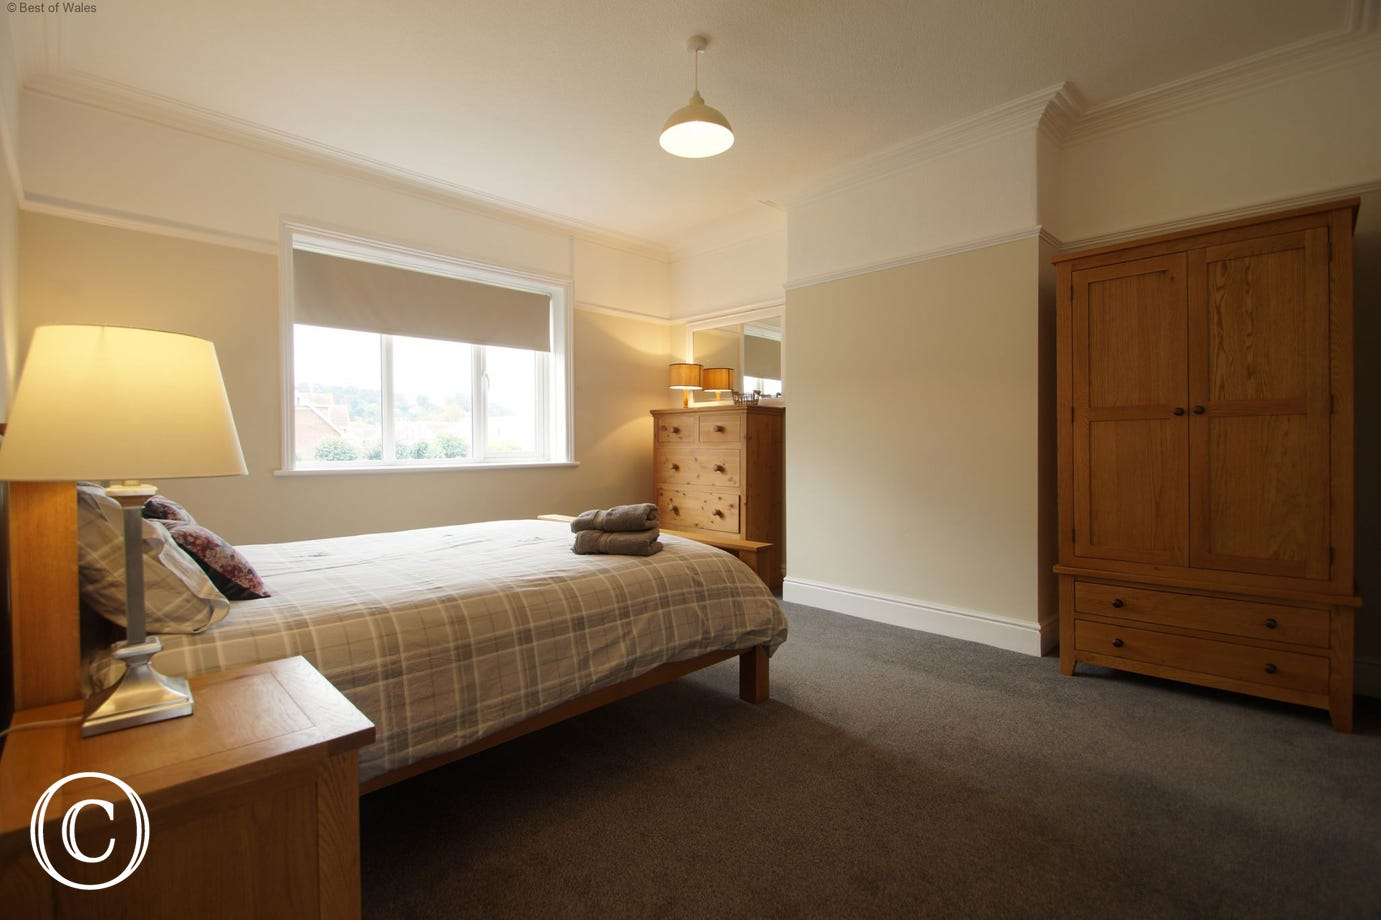 Bedroom 3 - Another spacious bedroom with king size solid oak bed